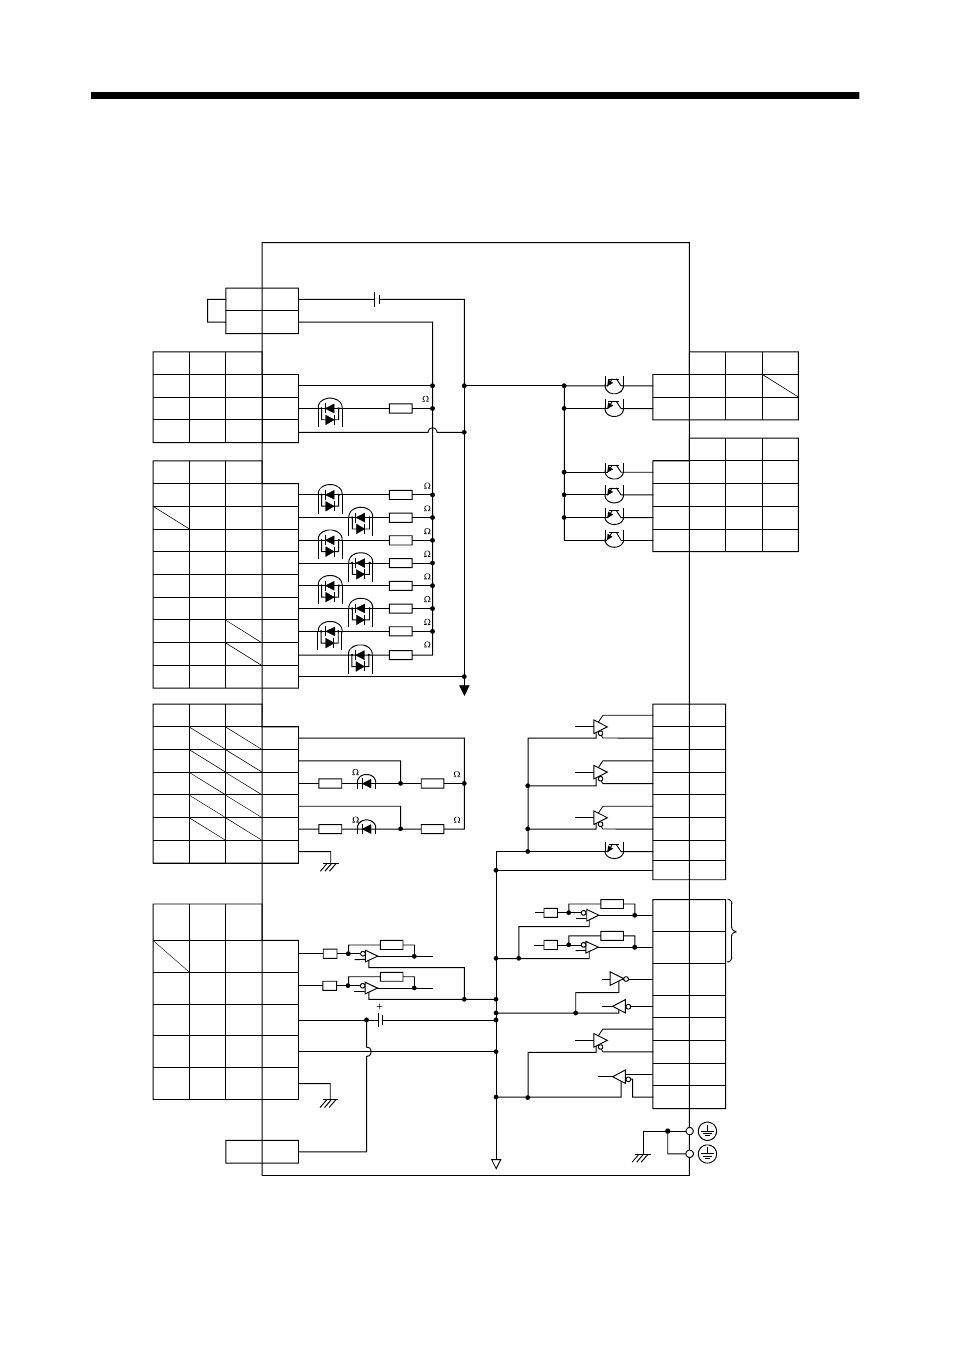 hight resolution of 2 internal connection diagram of servo amplifier signals and wiring2 internal connection diagram of servo